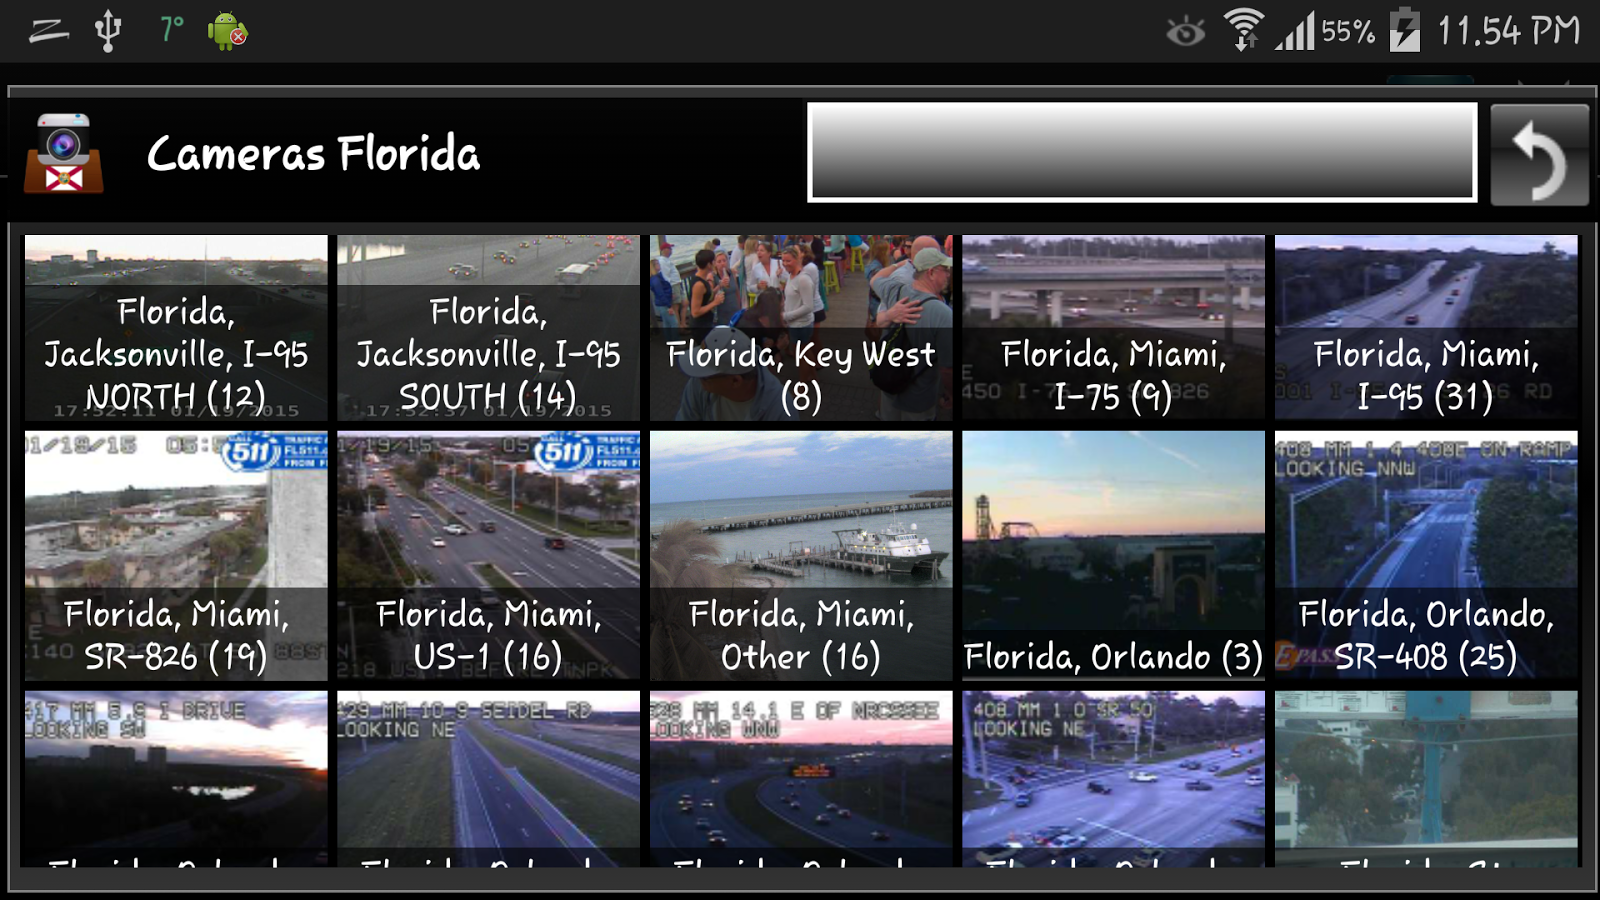 Florida Cameras Traffic Cams Android Apps On Google Play - Florida map i 95